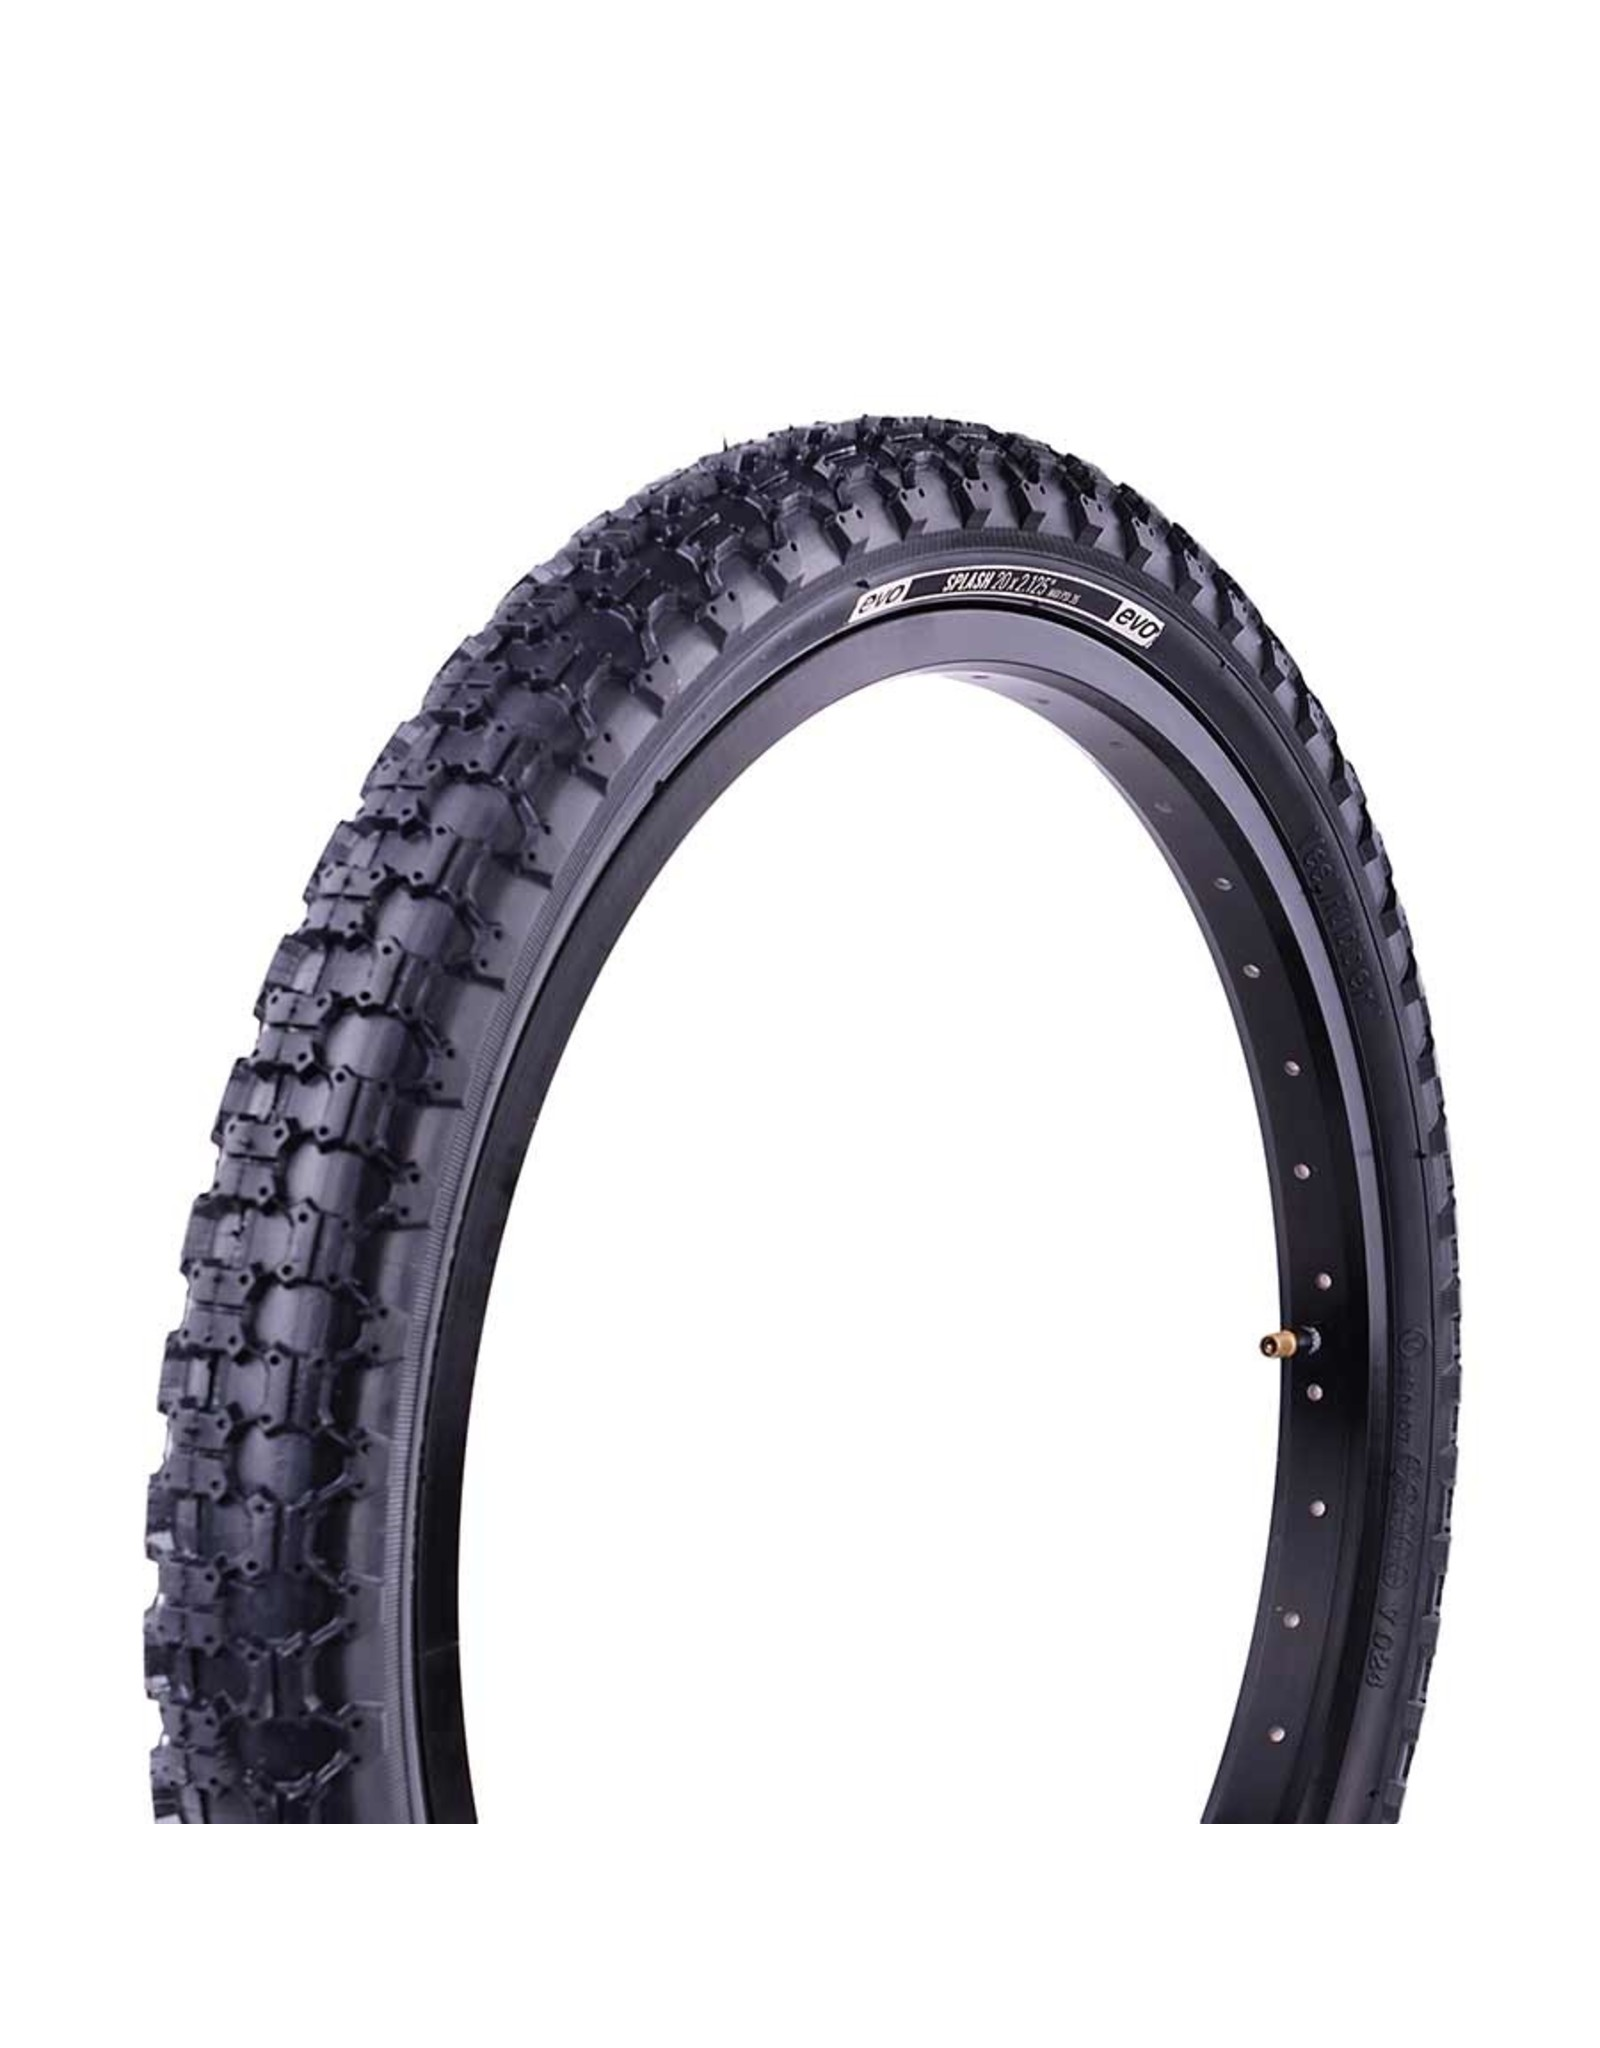 EVO EVO, Splash, Tire, 16''x1.75, Wire, Clincher, Black